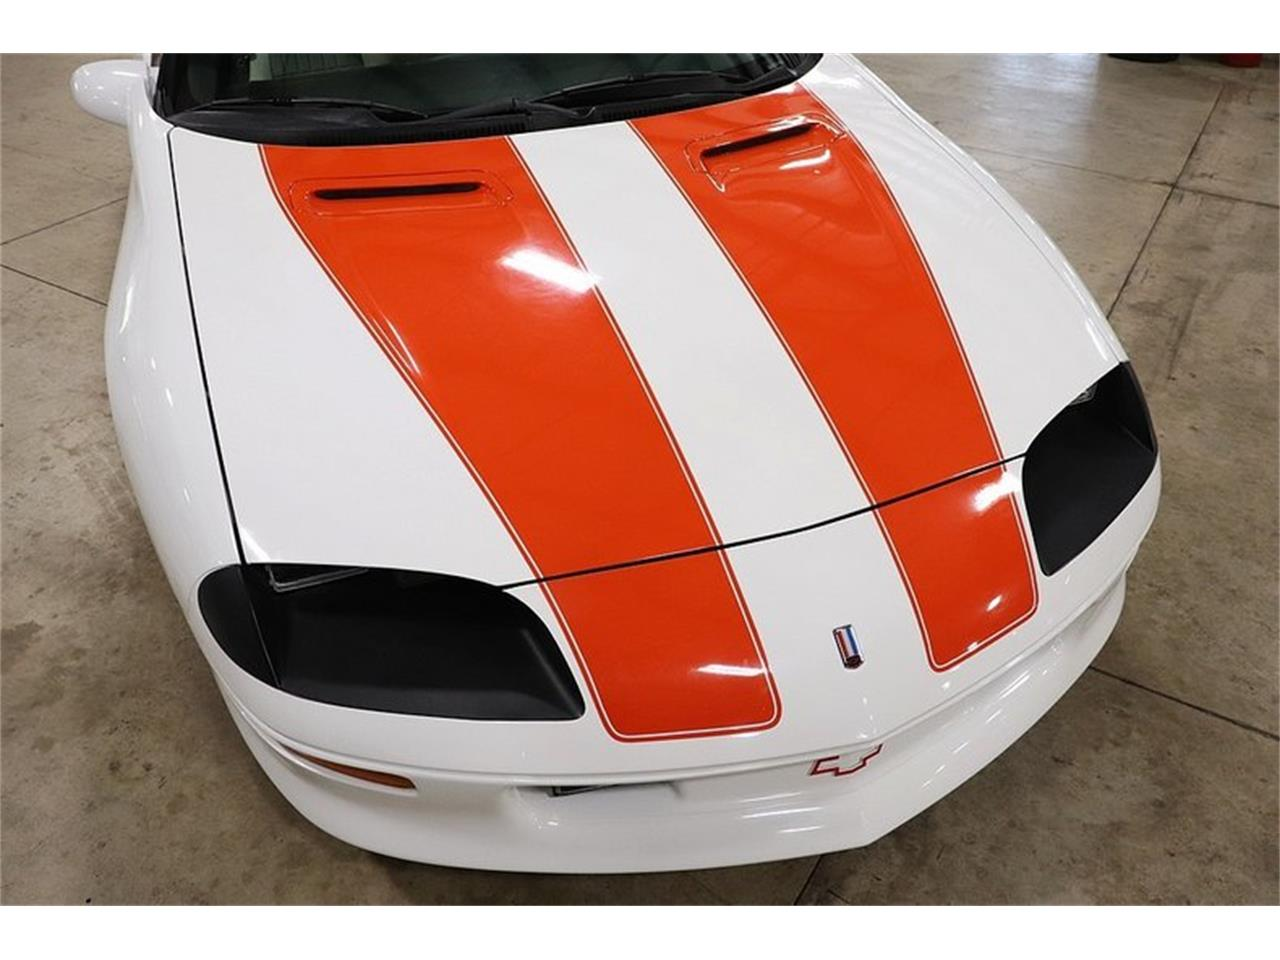 1997 Chevrolet Camaro Z28 for sale in Kentwood, MI – photo 9